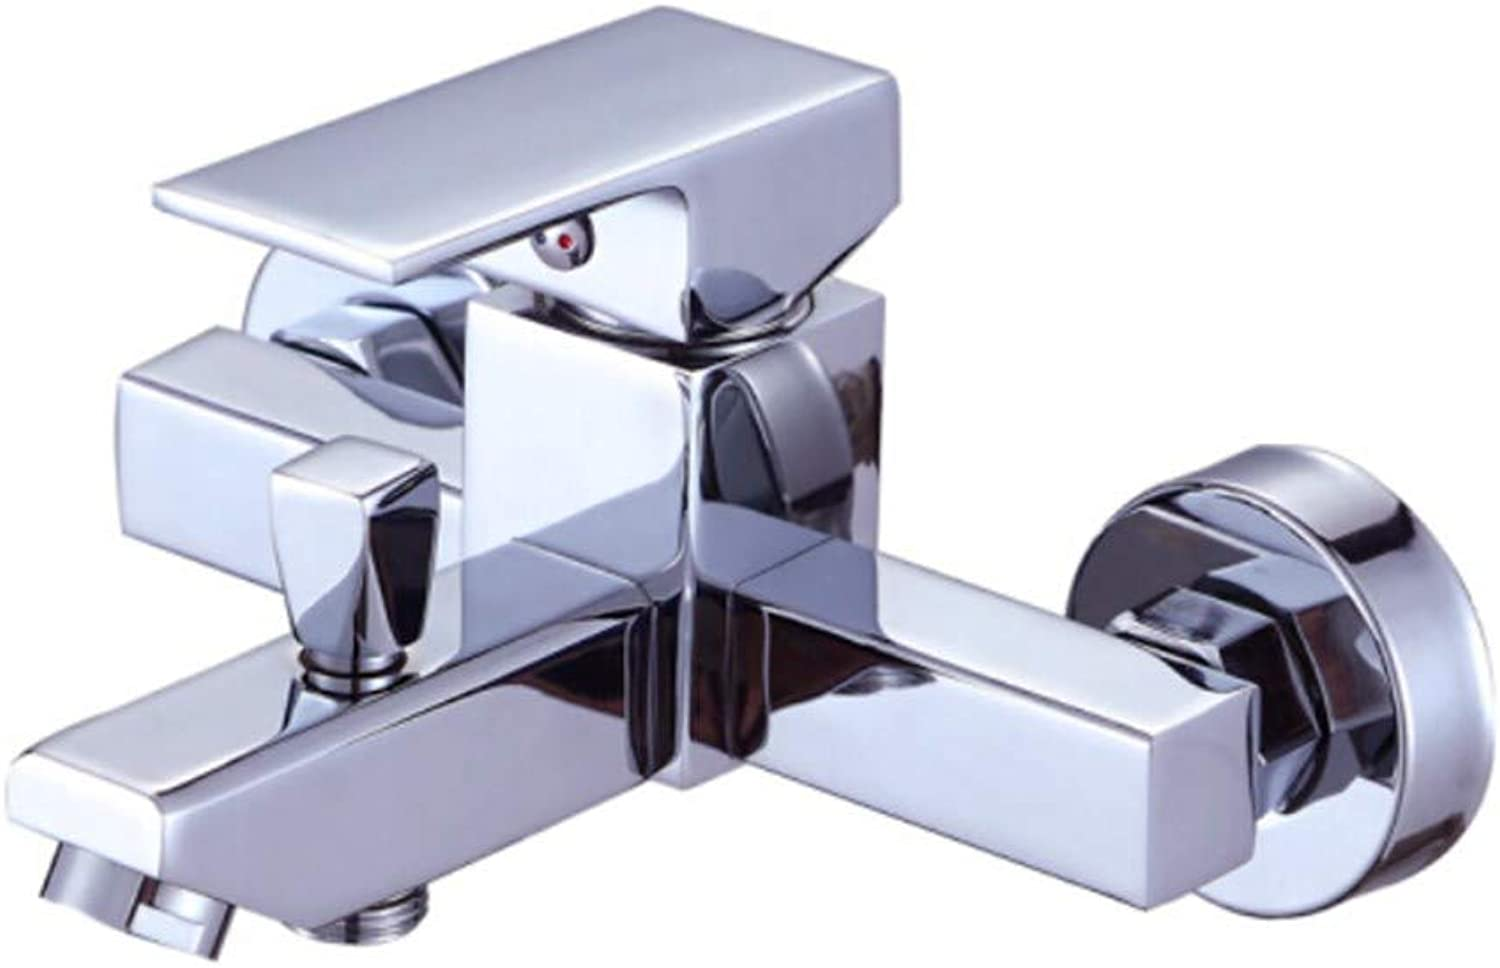 Kitchen Sink Taps Bathroom Taps Sanitary Bath Triple Cold and Hot Shower Faucet Concealed Mixed Valve Bathtub Faucet